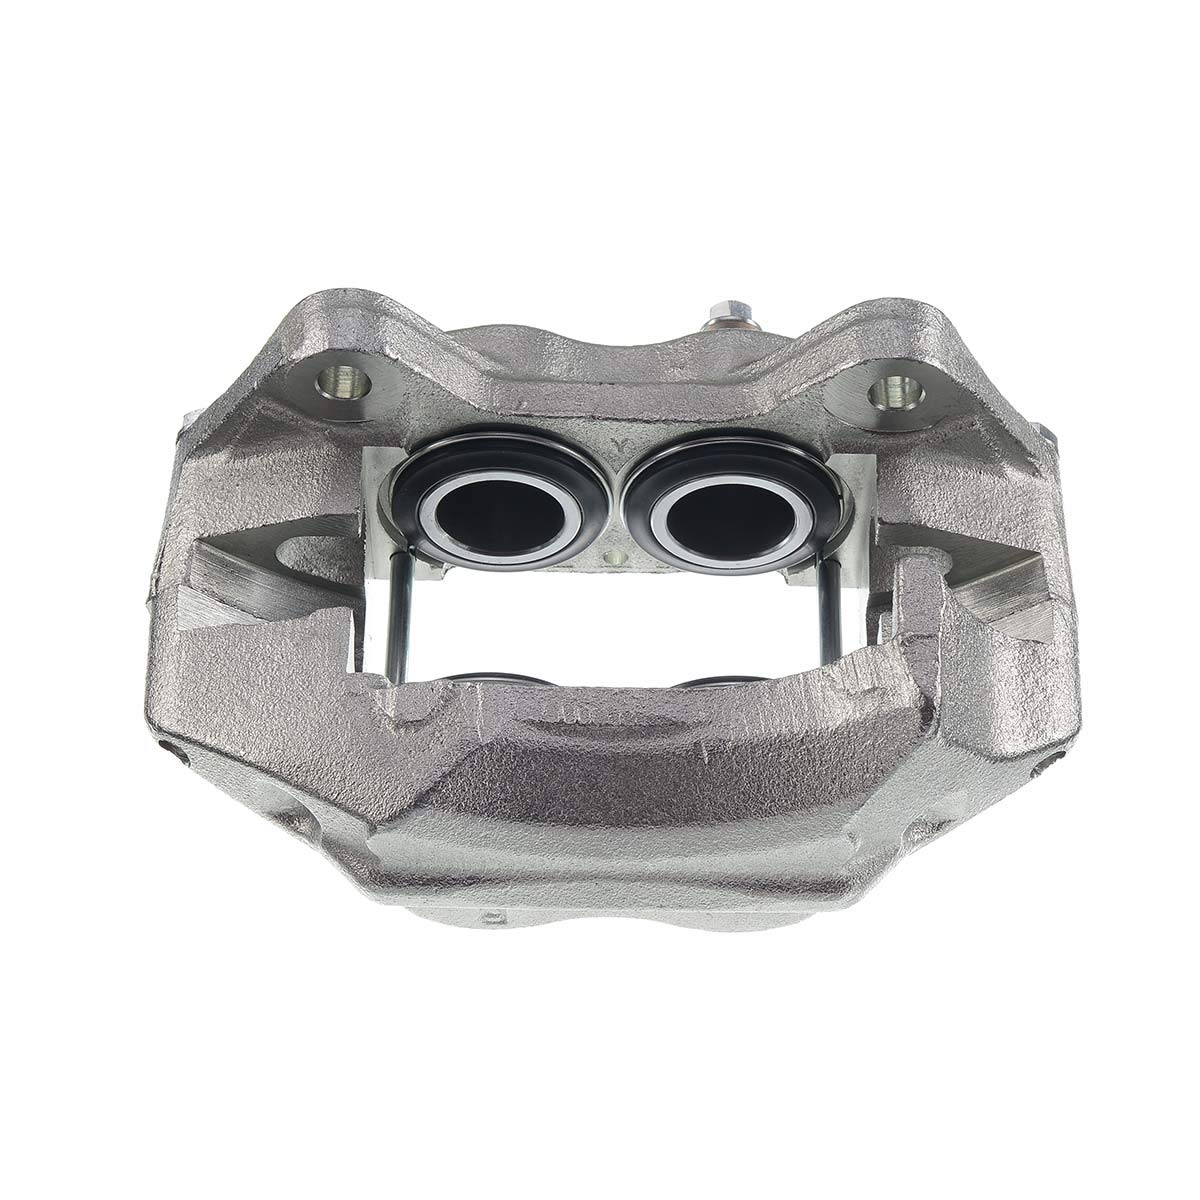 A-Premium Brake Caliper Without Bracket for Toyota Tacoma 1995-2004 Front Side 2-PC